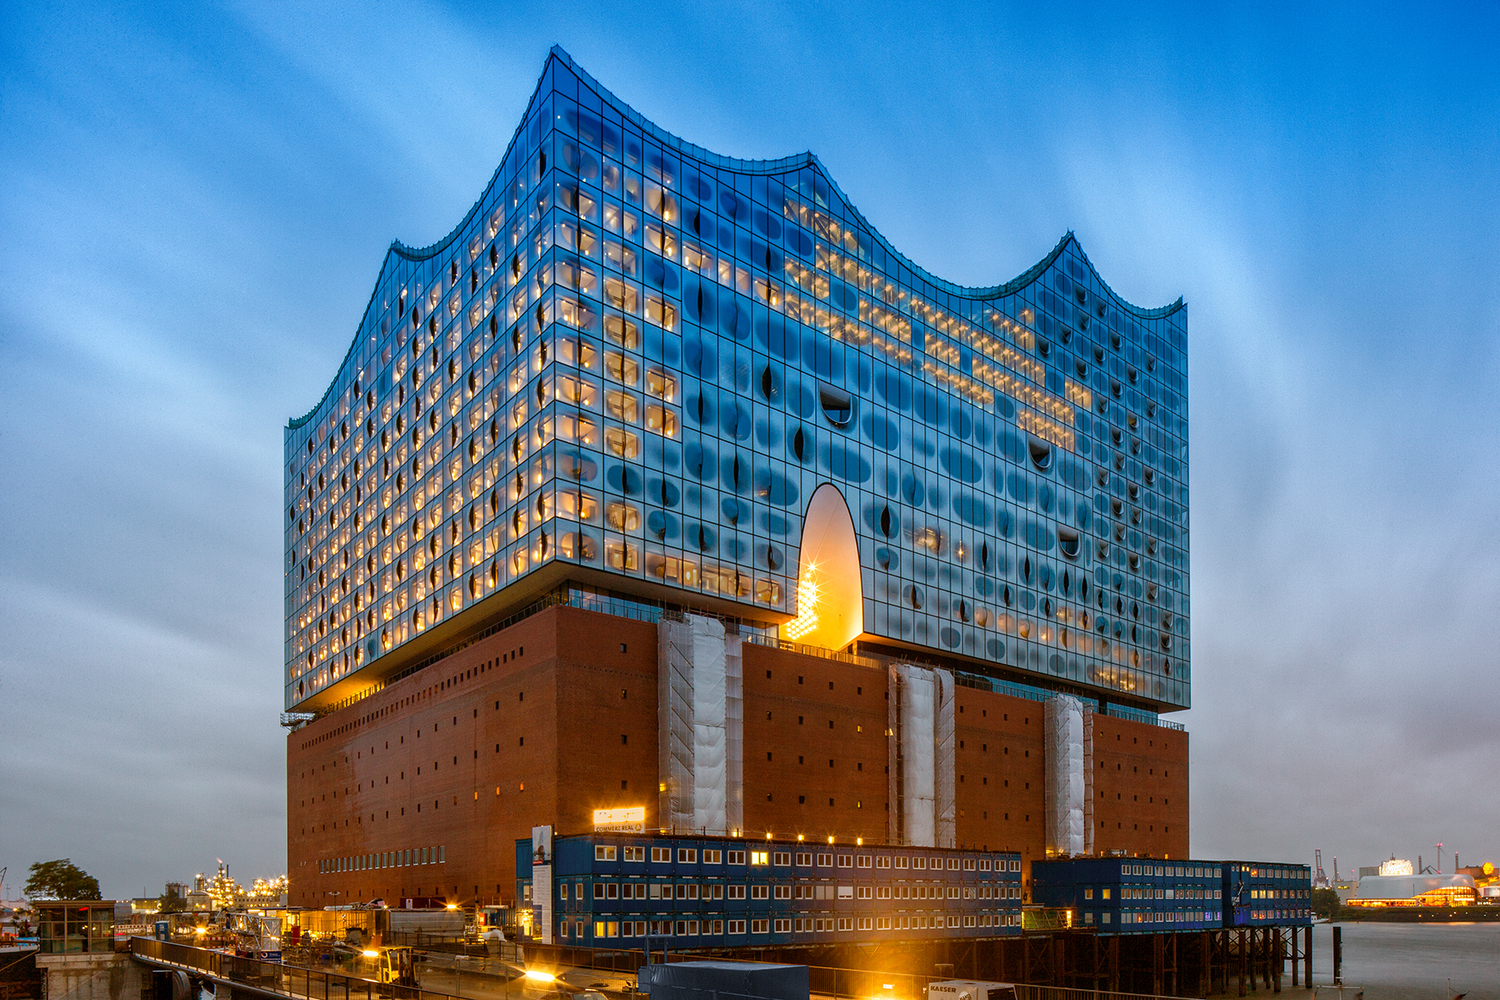 elbphilharmonie | Reflective mirrors glass | Hamburg | ipachrome design | AGC Interpane | Concert Hall in Hamburg | designed by Herzog & de Meuron